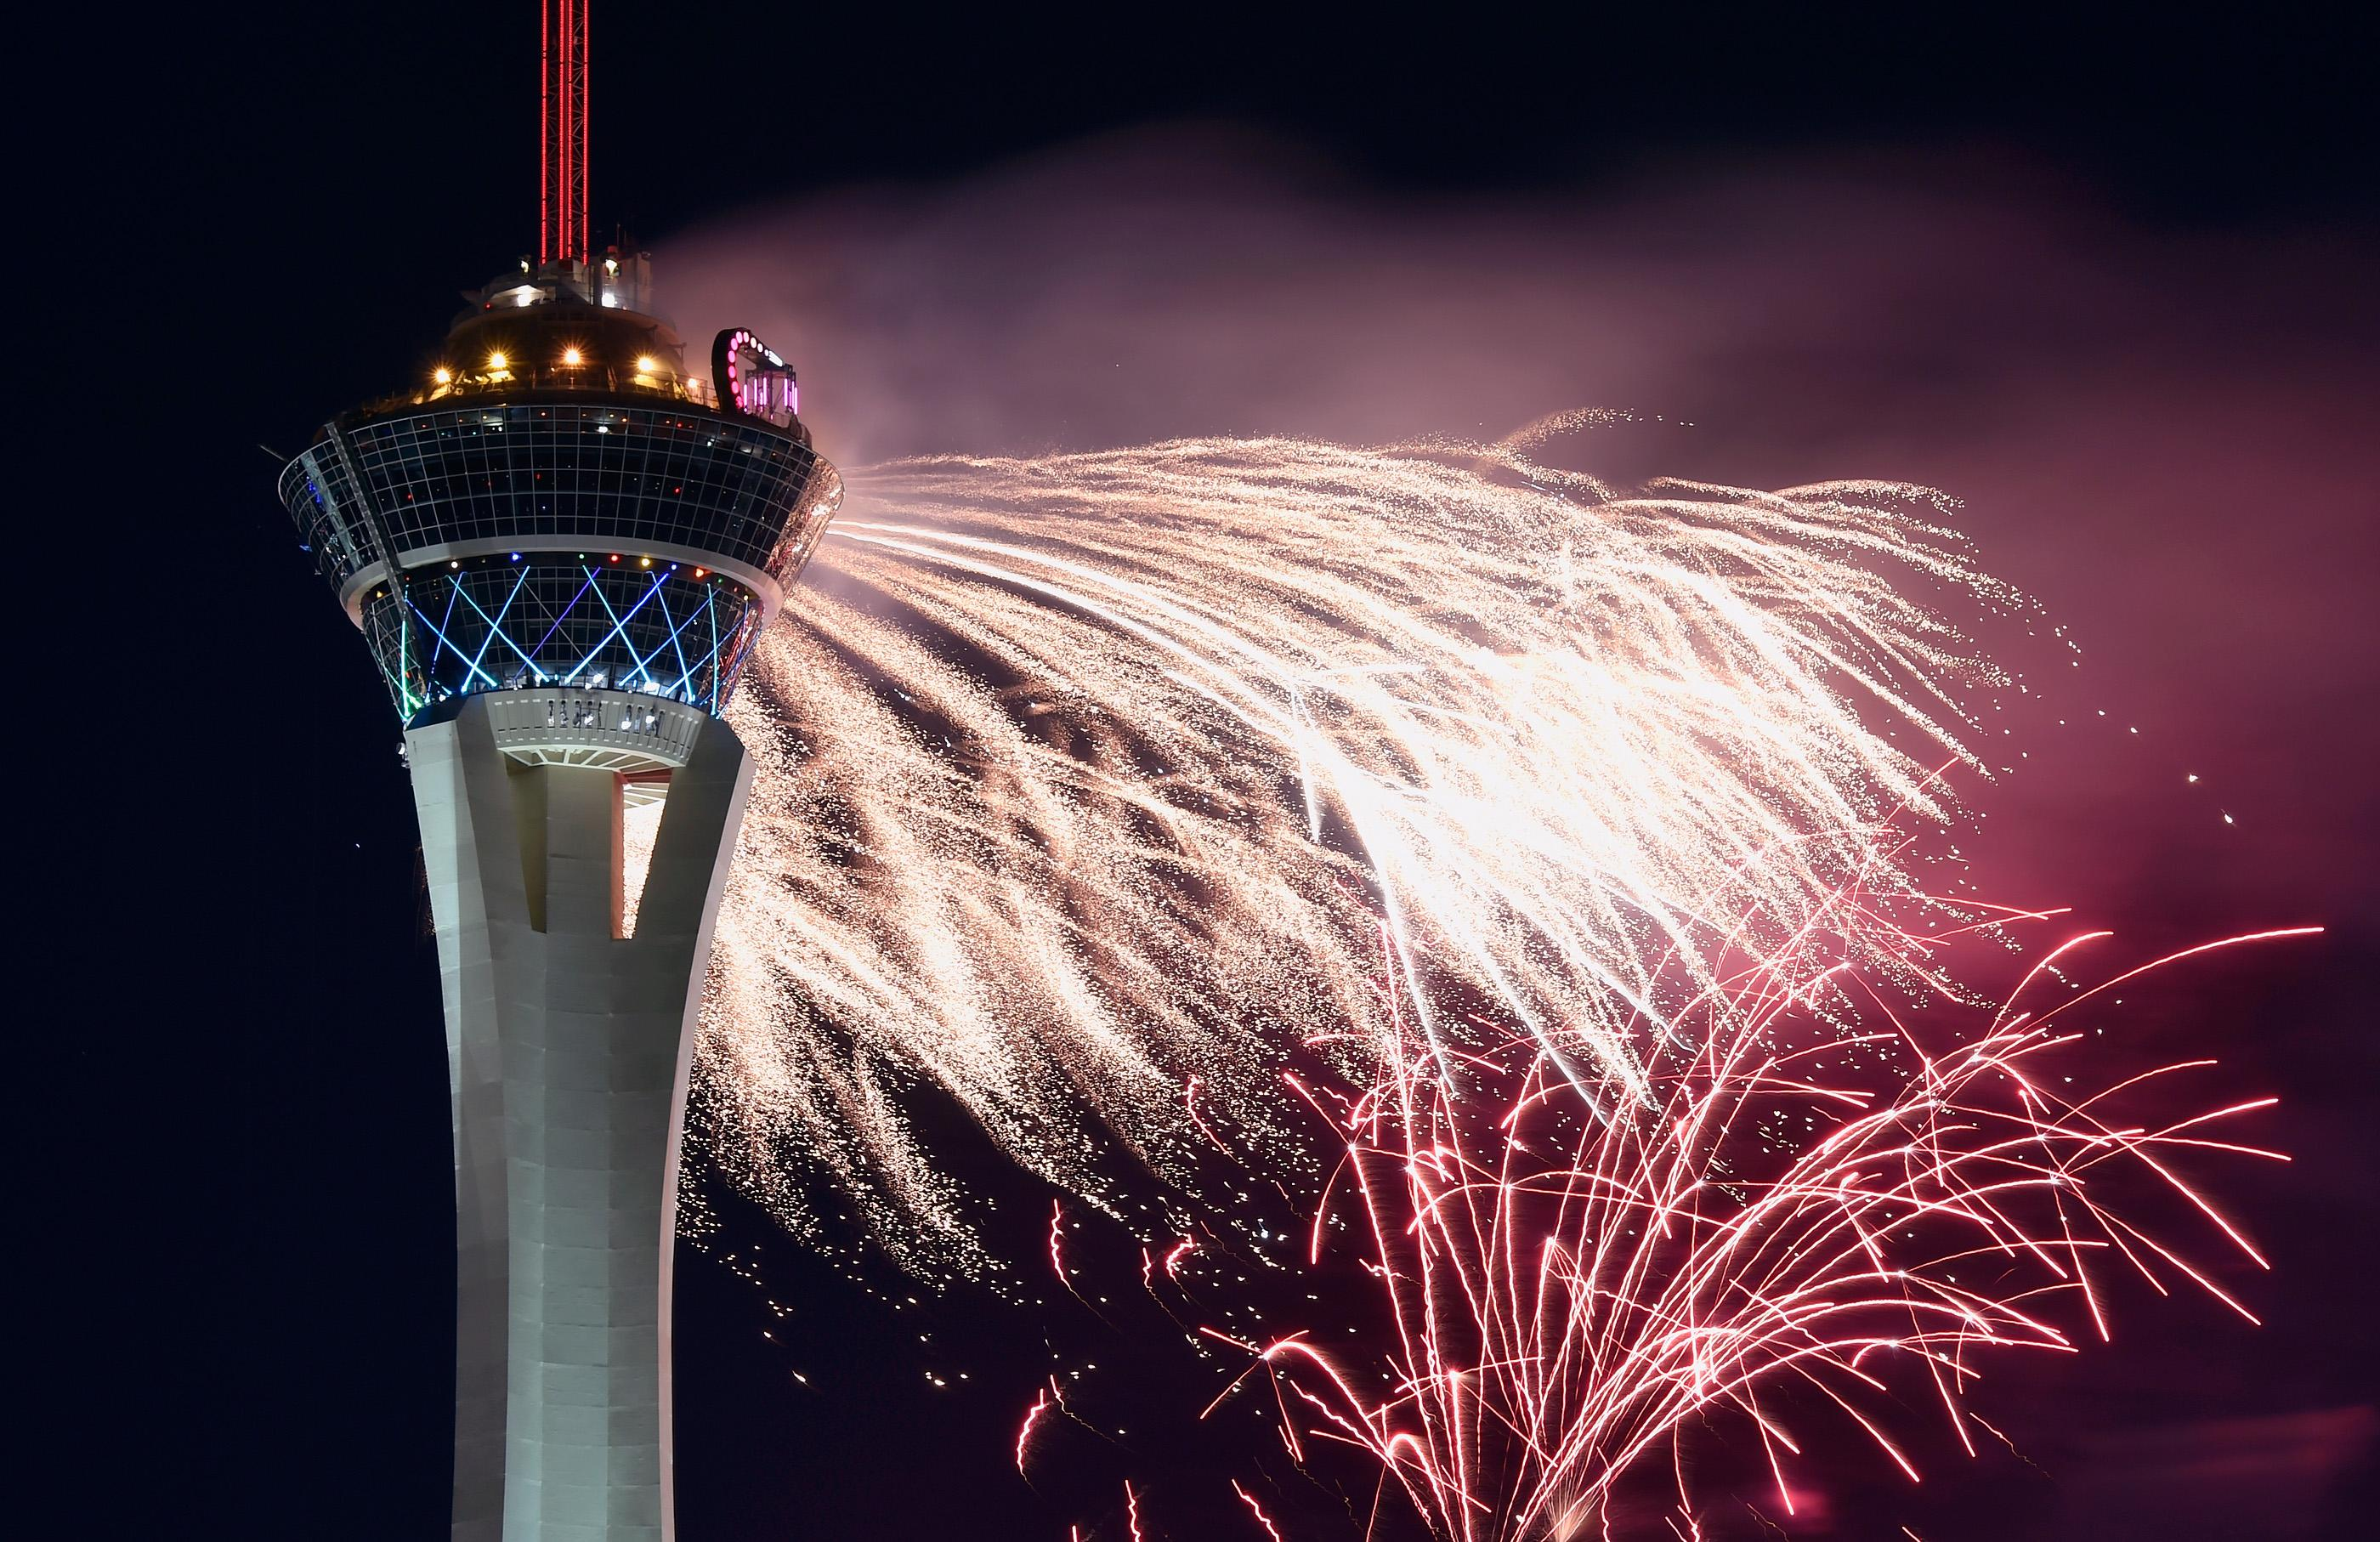 Fireworks light up the sky at the Stratosphere Tower in celebration of the Independence Day holiday Wednesday, July 4, 2018, in Las Vegas. Hotels across the Las Vegas valley launch a bevy of firework displays in honor of the United States' 242nd birthday. CREDIT: David Becker/Las Vegas News Bureau